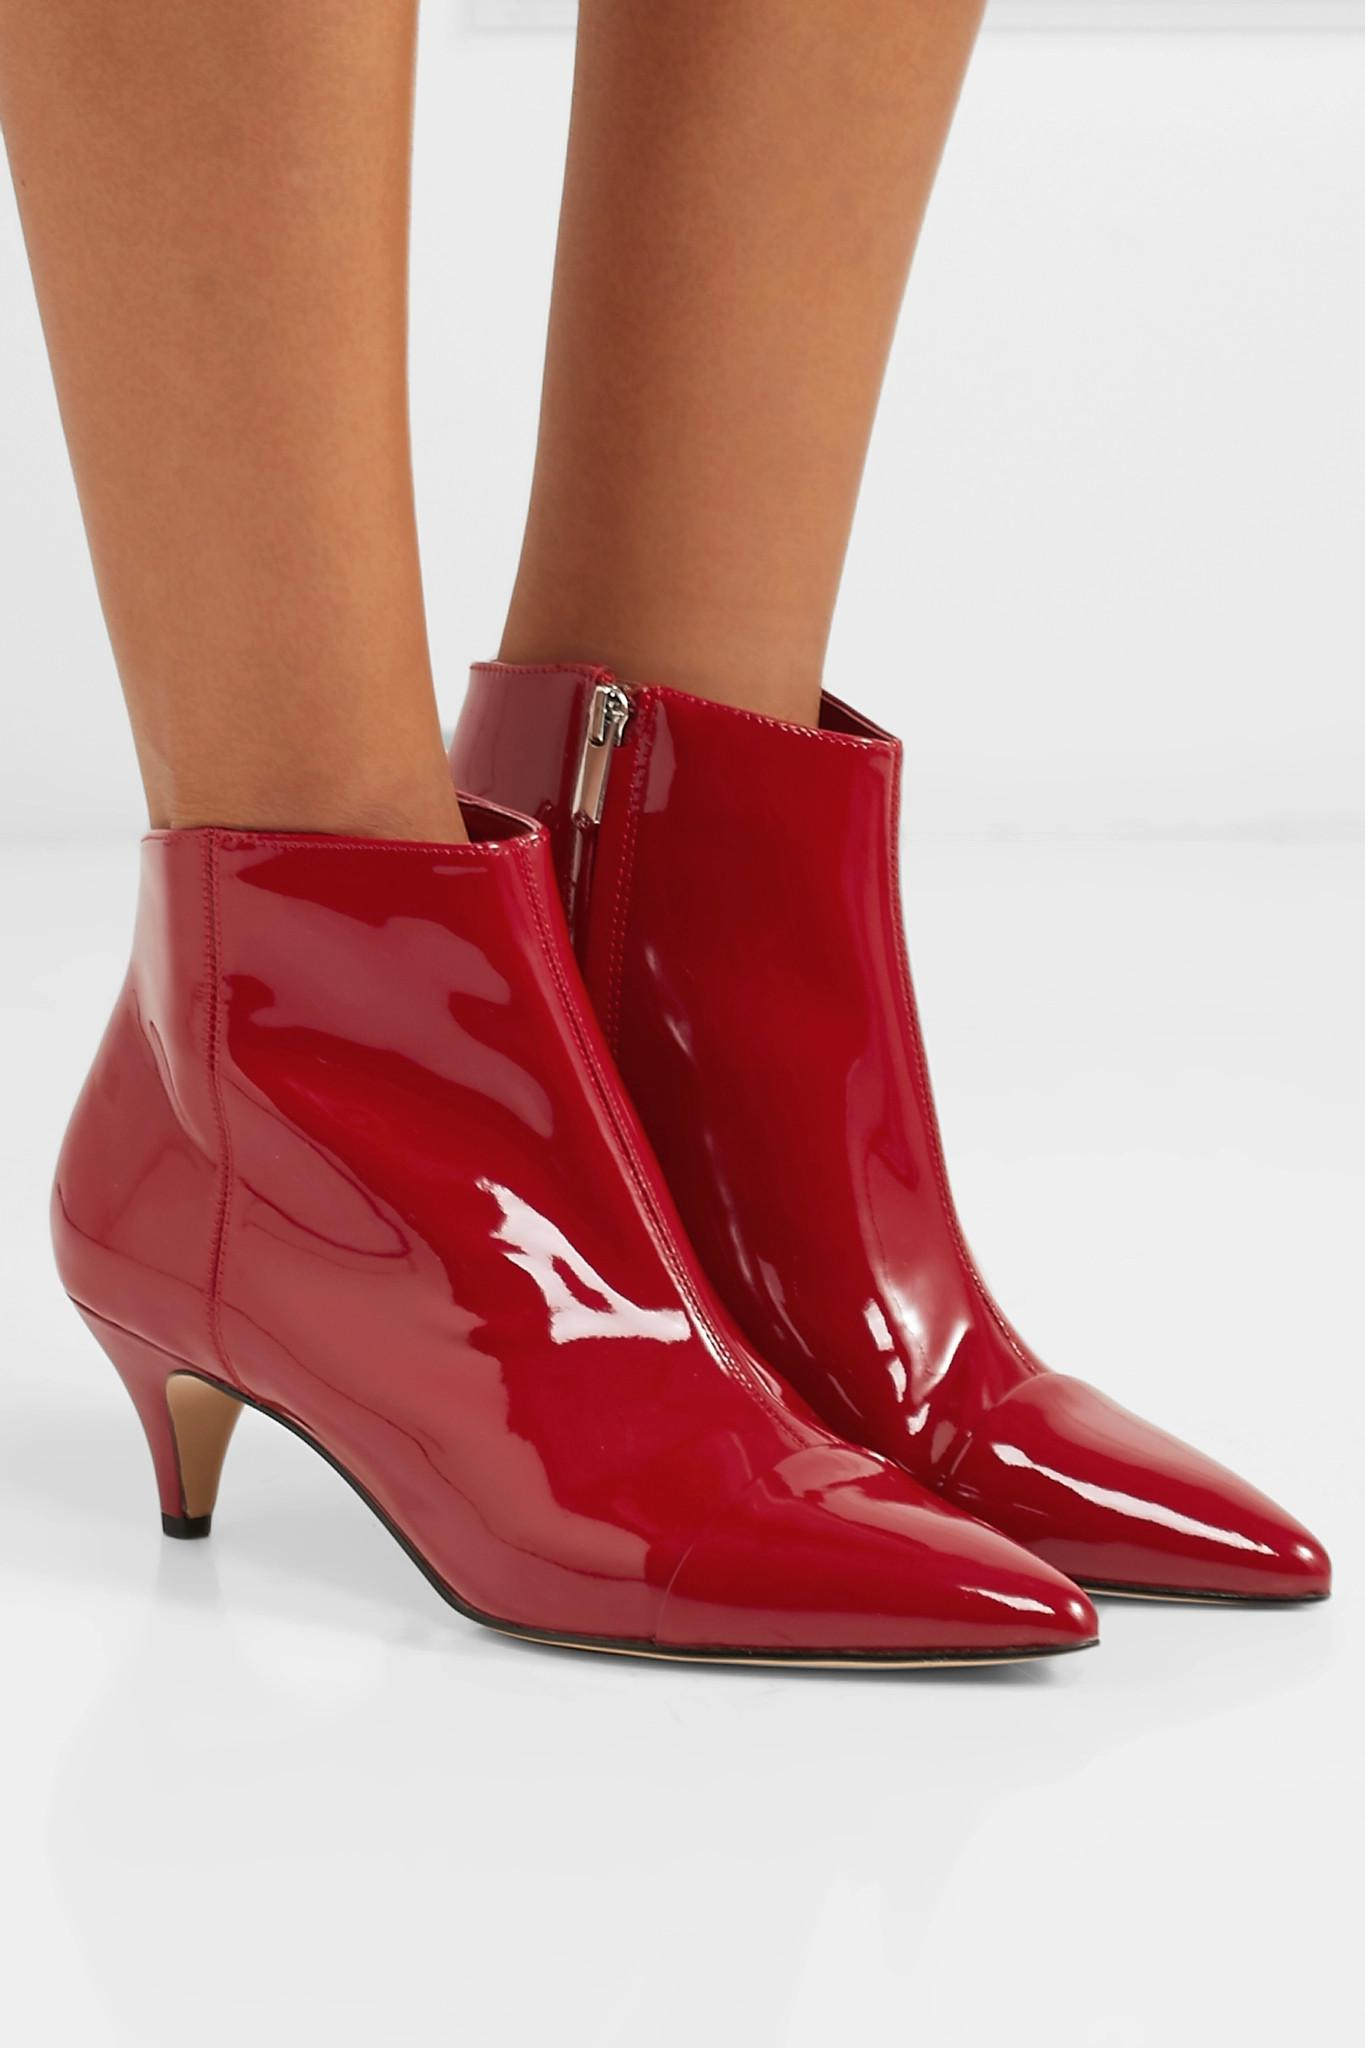 bb6d846ade3d33 Lyst - Sam Edelman Kinzey Patent-leather Ankle Boots in Red